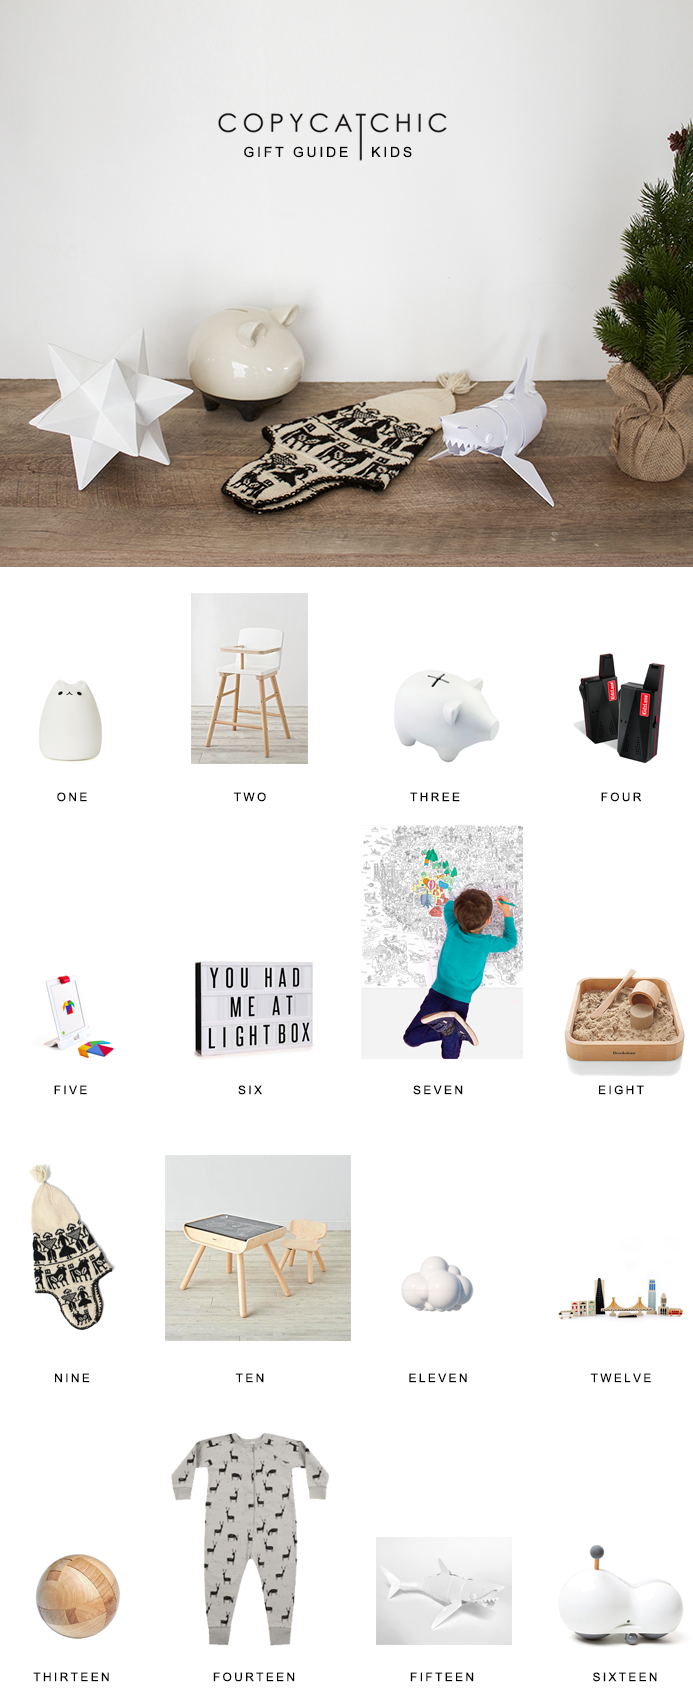 Christmas gifts for children | Copy Cat Chic favorites for 2016 for those cute kids holiday season! | Luxe living for less | modern and minimalist toys